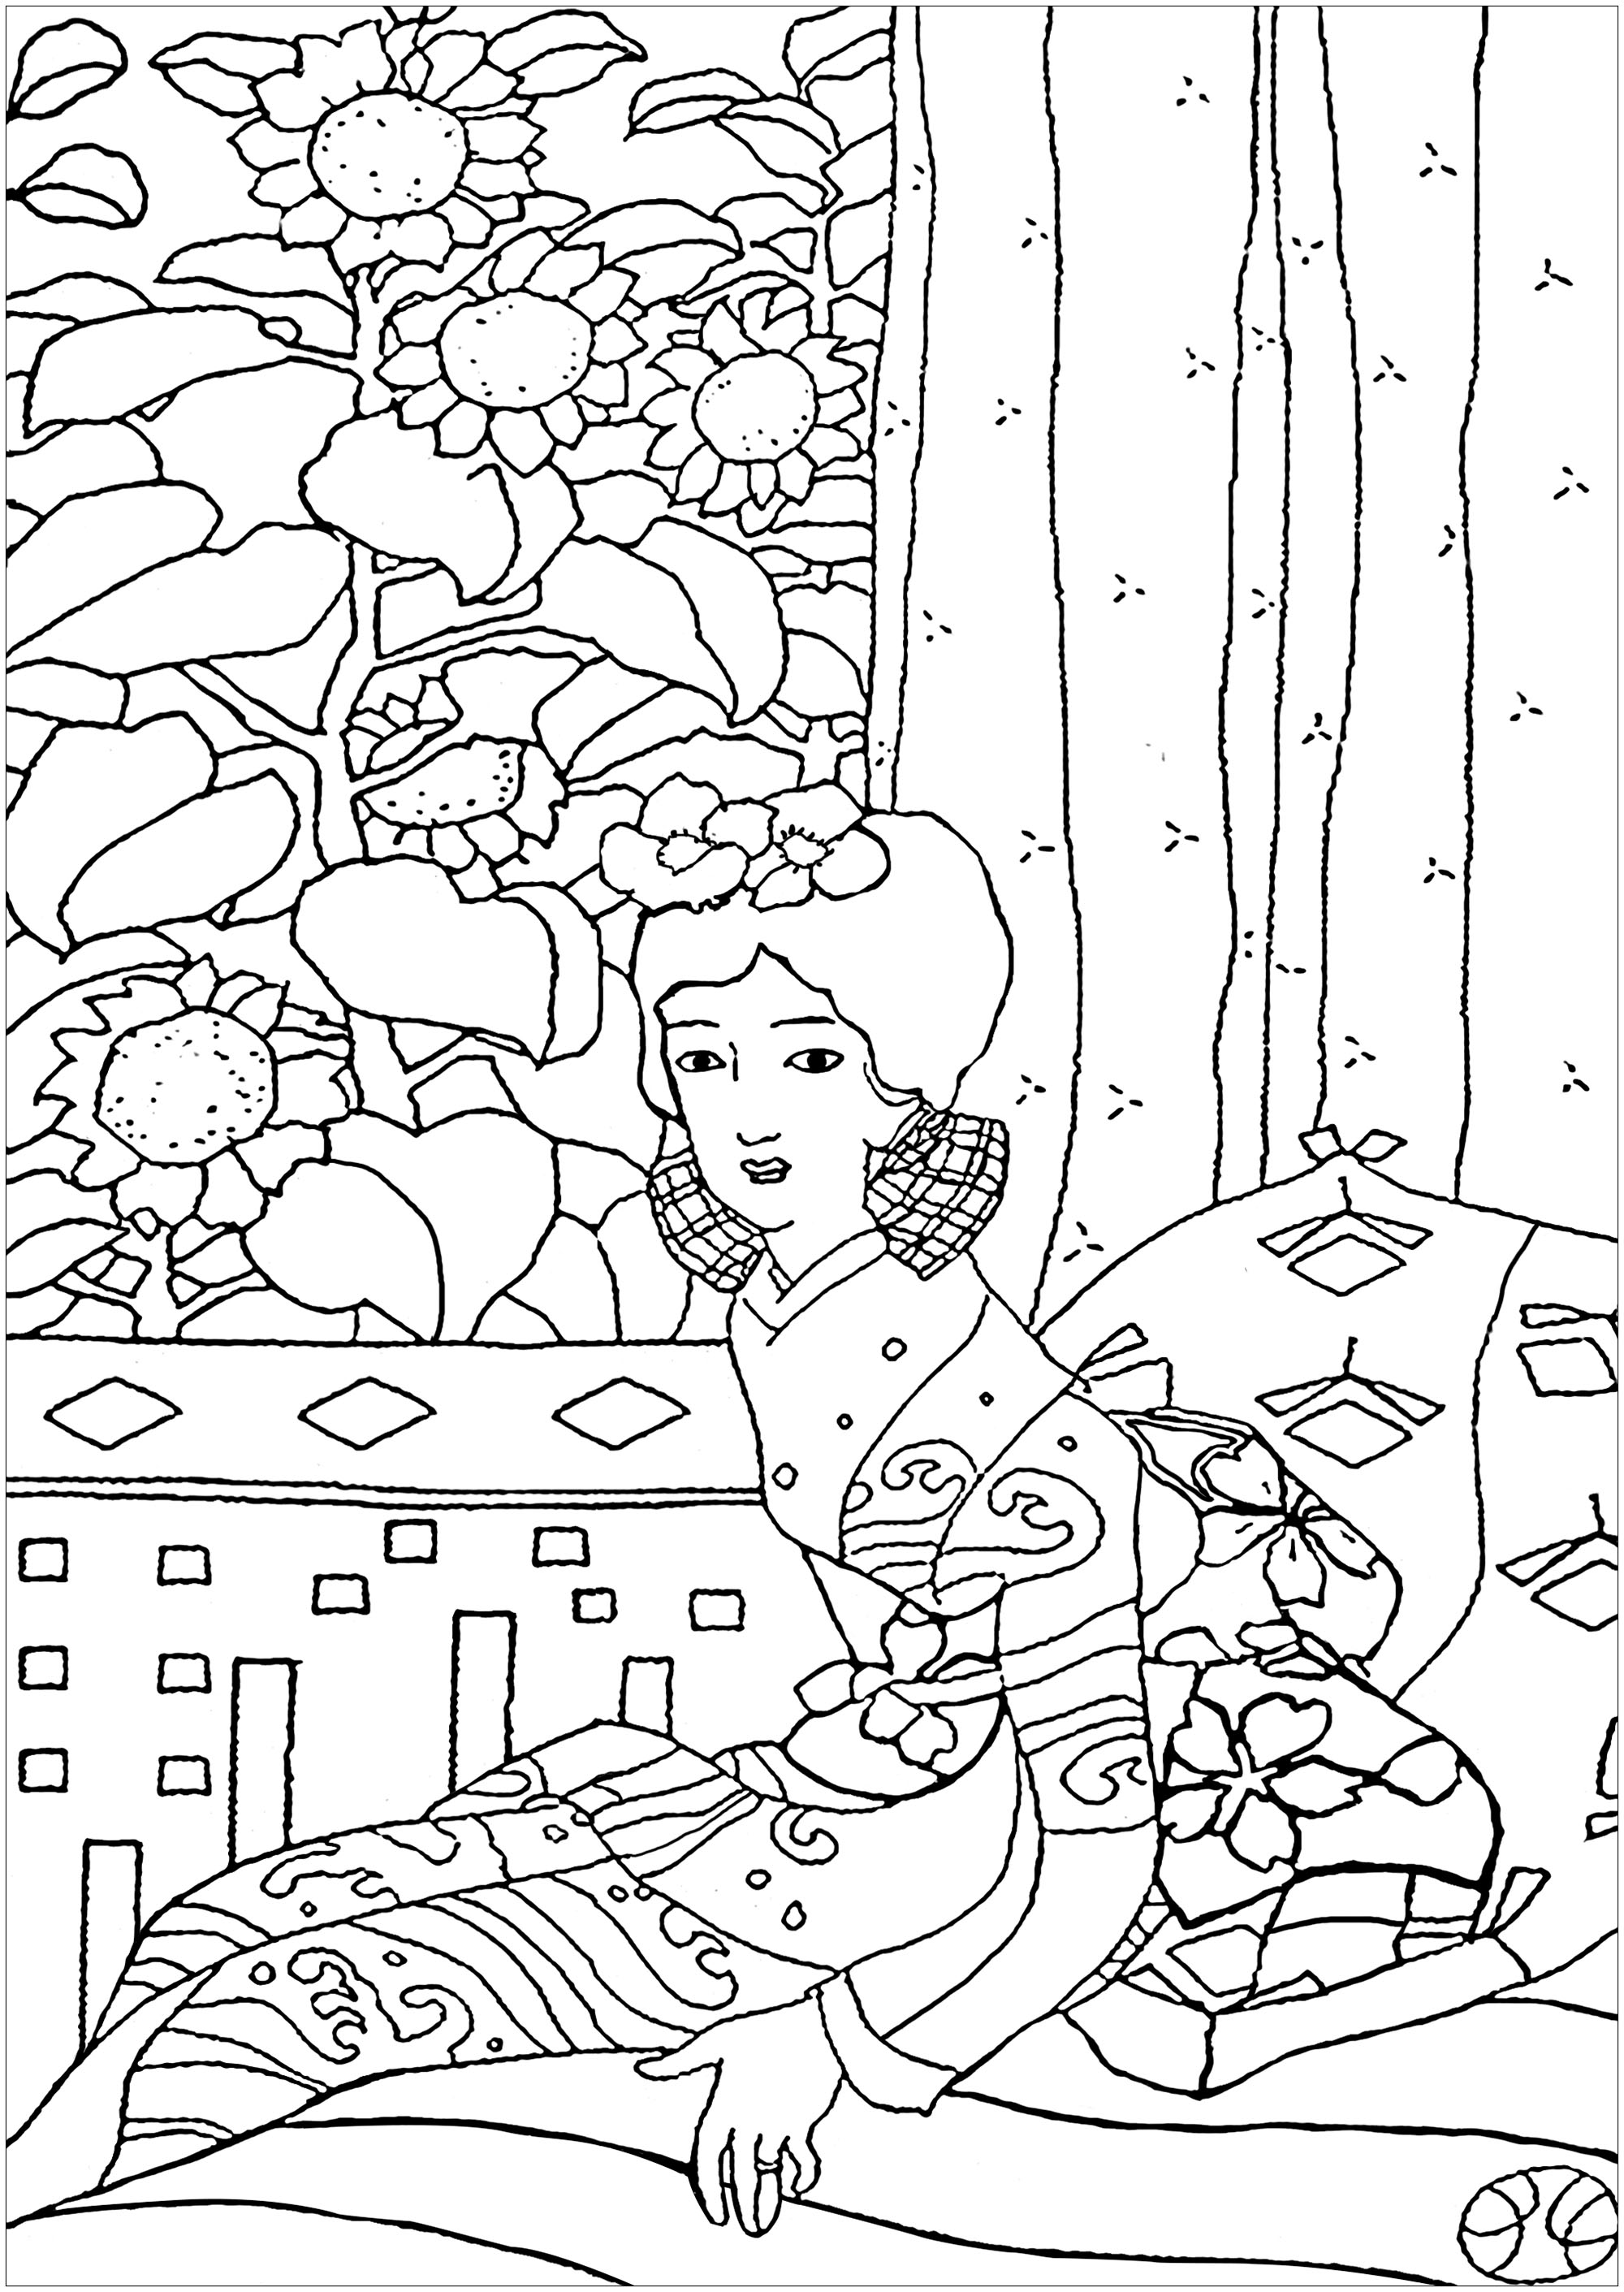 japanese coloring book pages japanese drawing japan adult coloring pages page 2 pages japanese coloring book